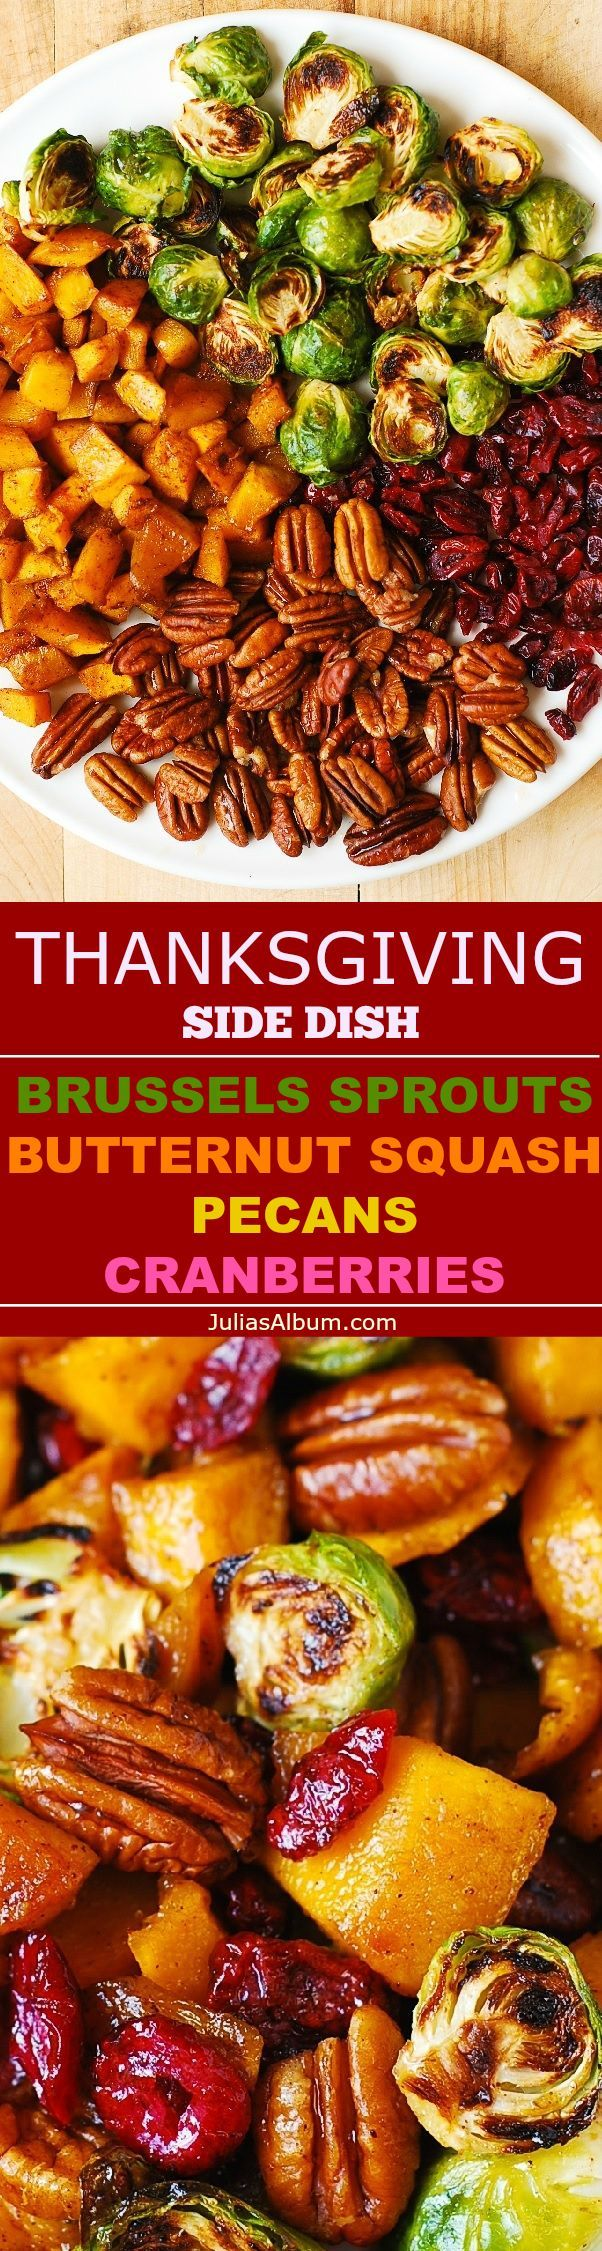 Thanksgiving Side Dish: Roasted Brussels Sprouts; Butternut Squash glazed with Cinnamon & Maple Syrup; Pecans & Cranberries. YUM! Healthy, vegetarian, gluten free Holiday Recipe.